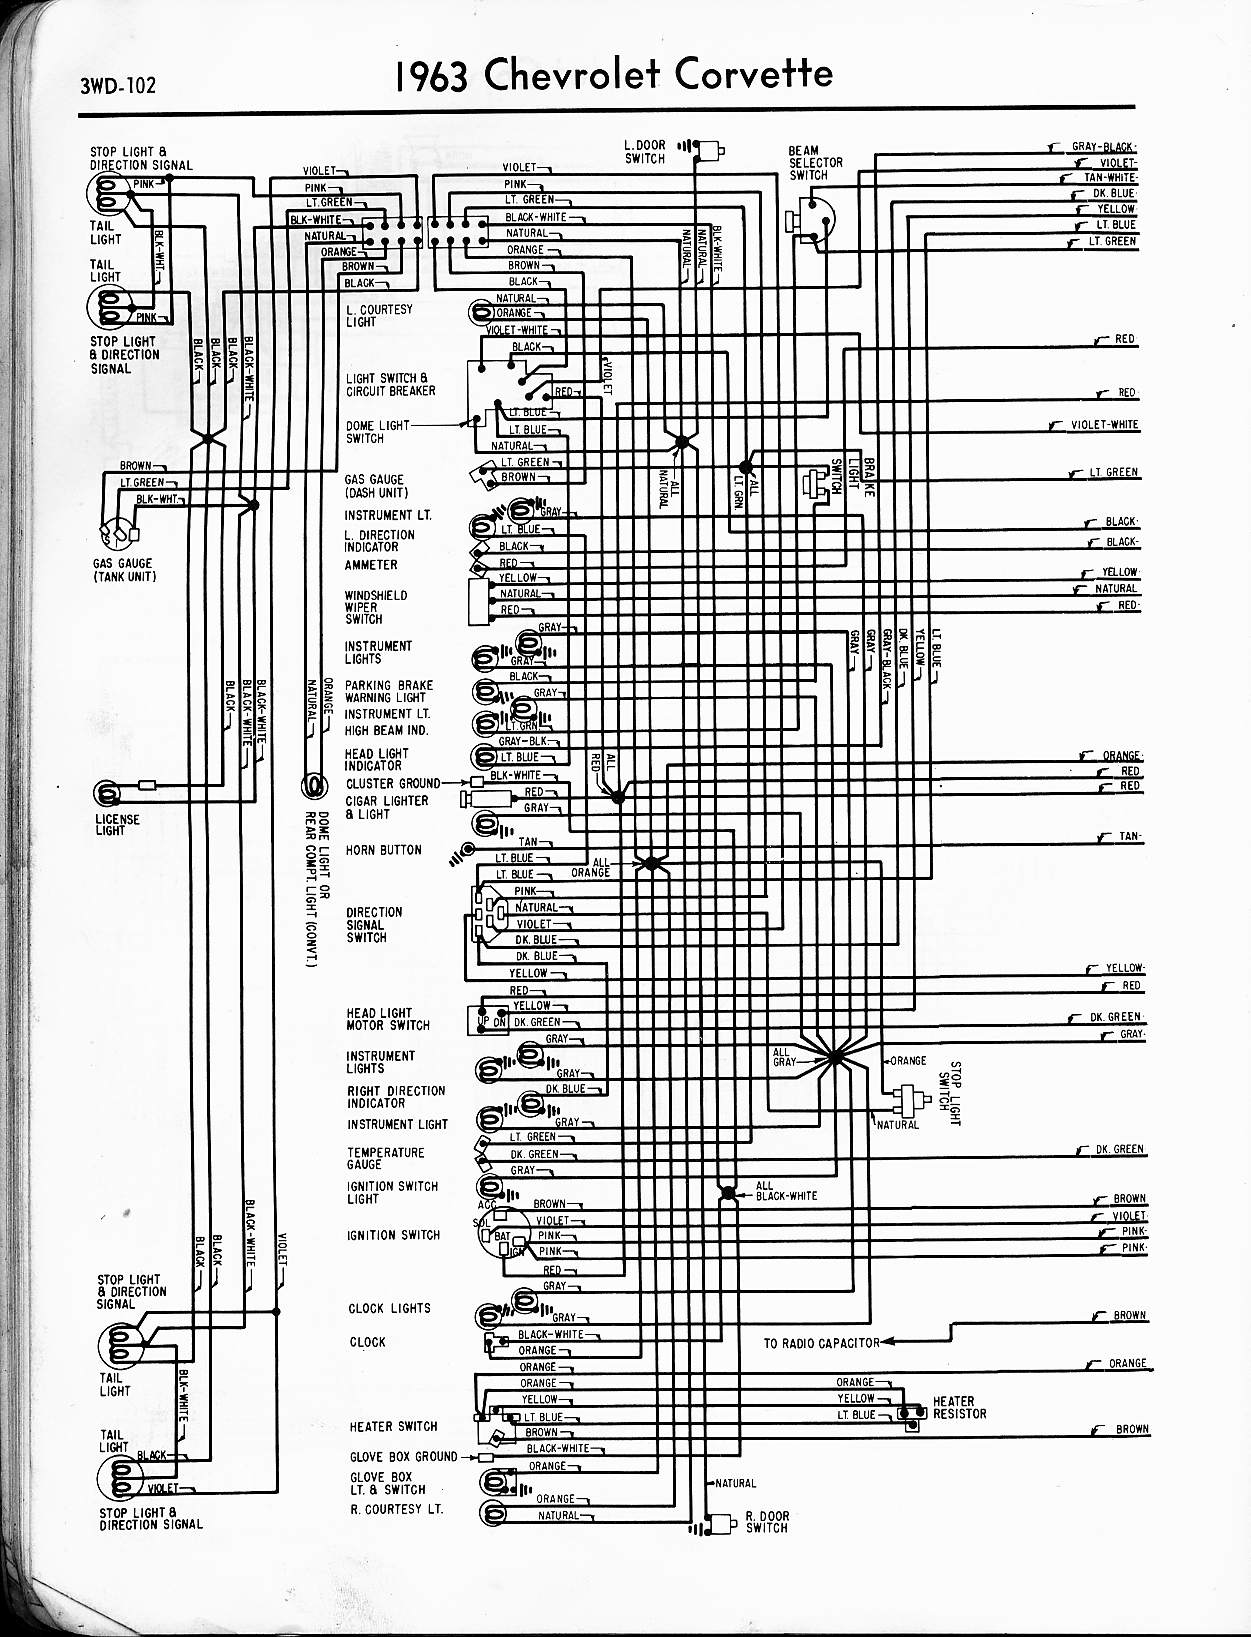 1965 Corvette Fuse Box Wiring Archive Of Automotive Diagram 1964 Pictures Rh Smdeeming Co Uk